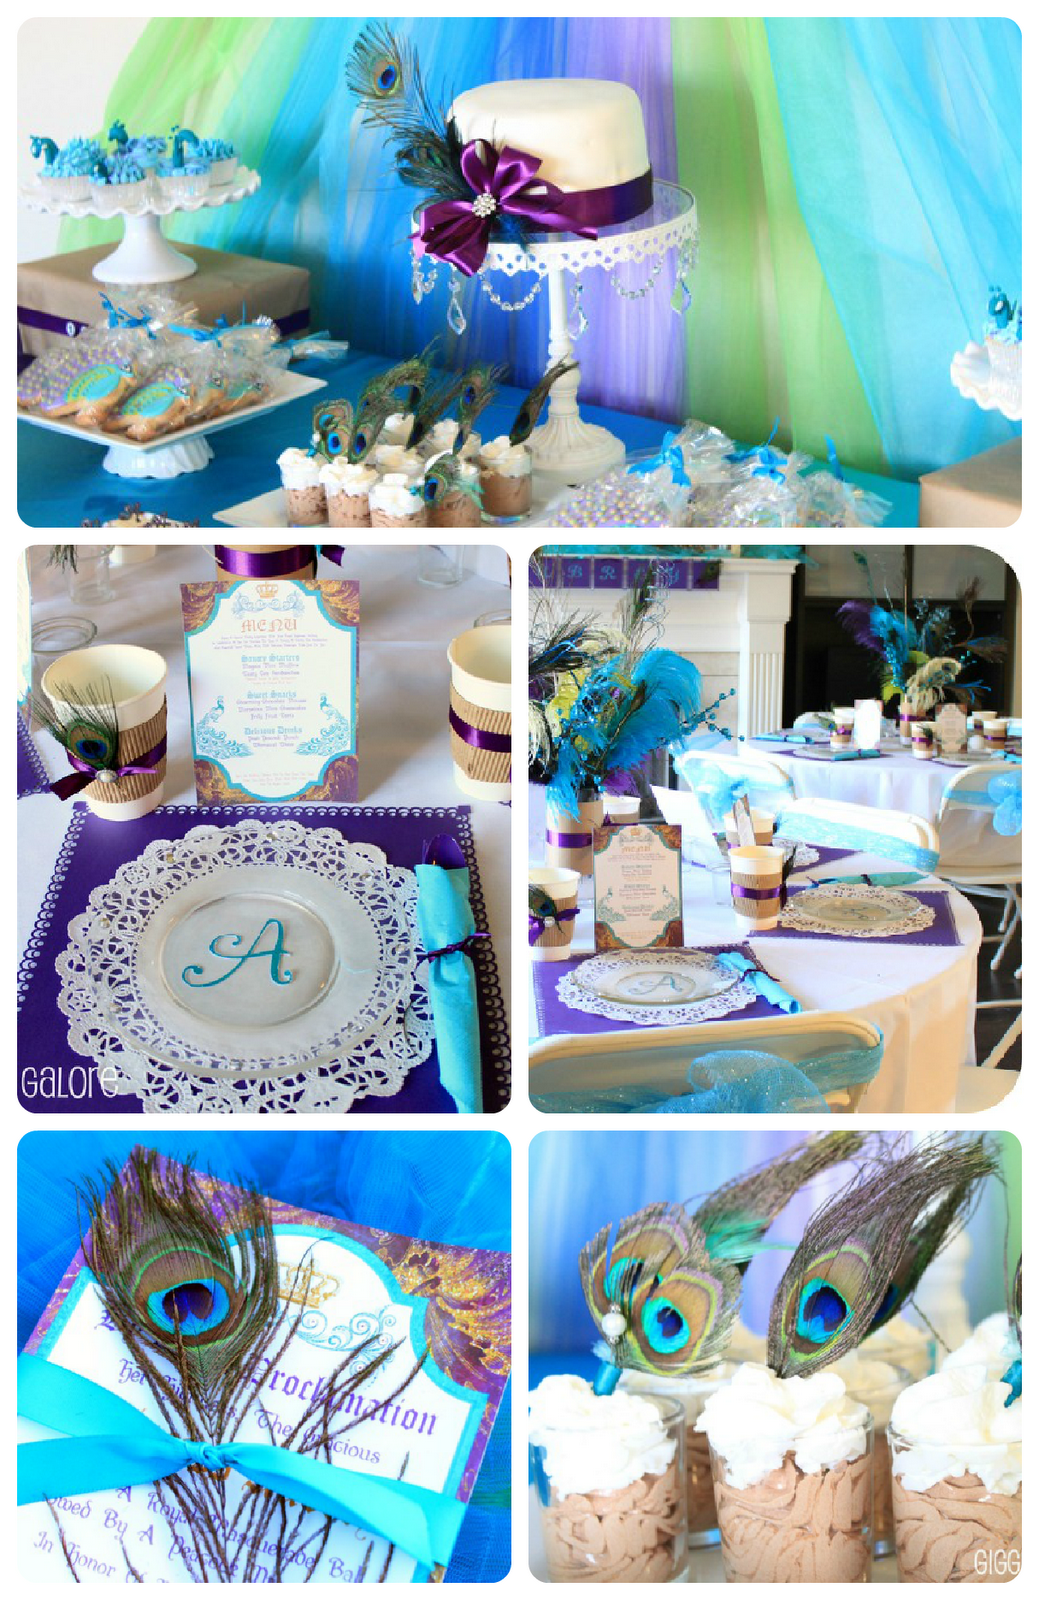 wedding shower decor ideas maybe not all the peacock feathers but the colors